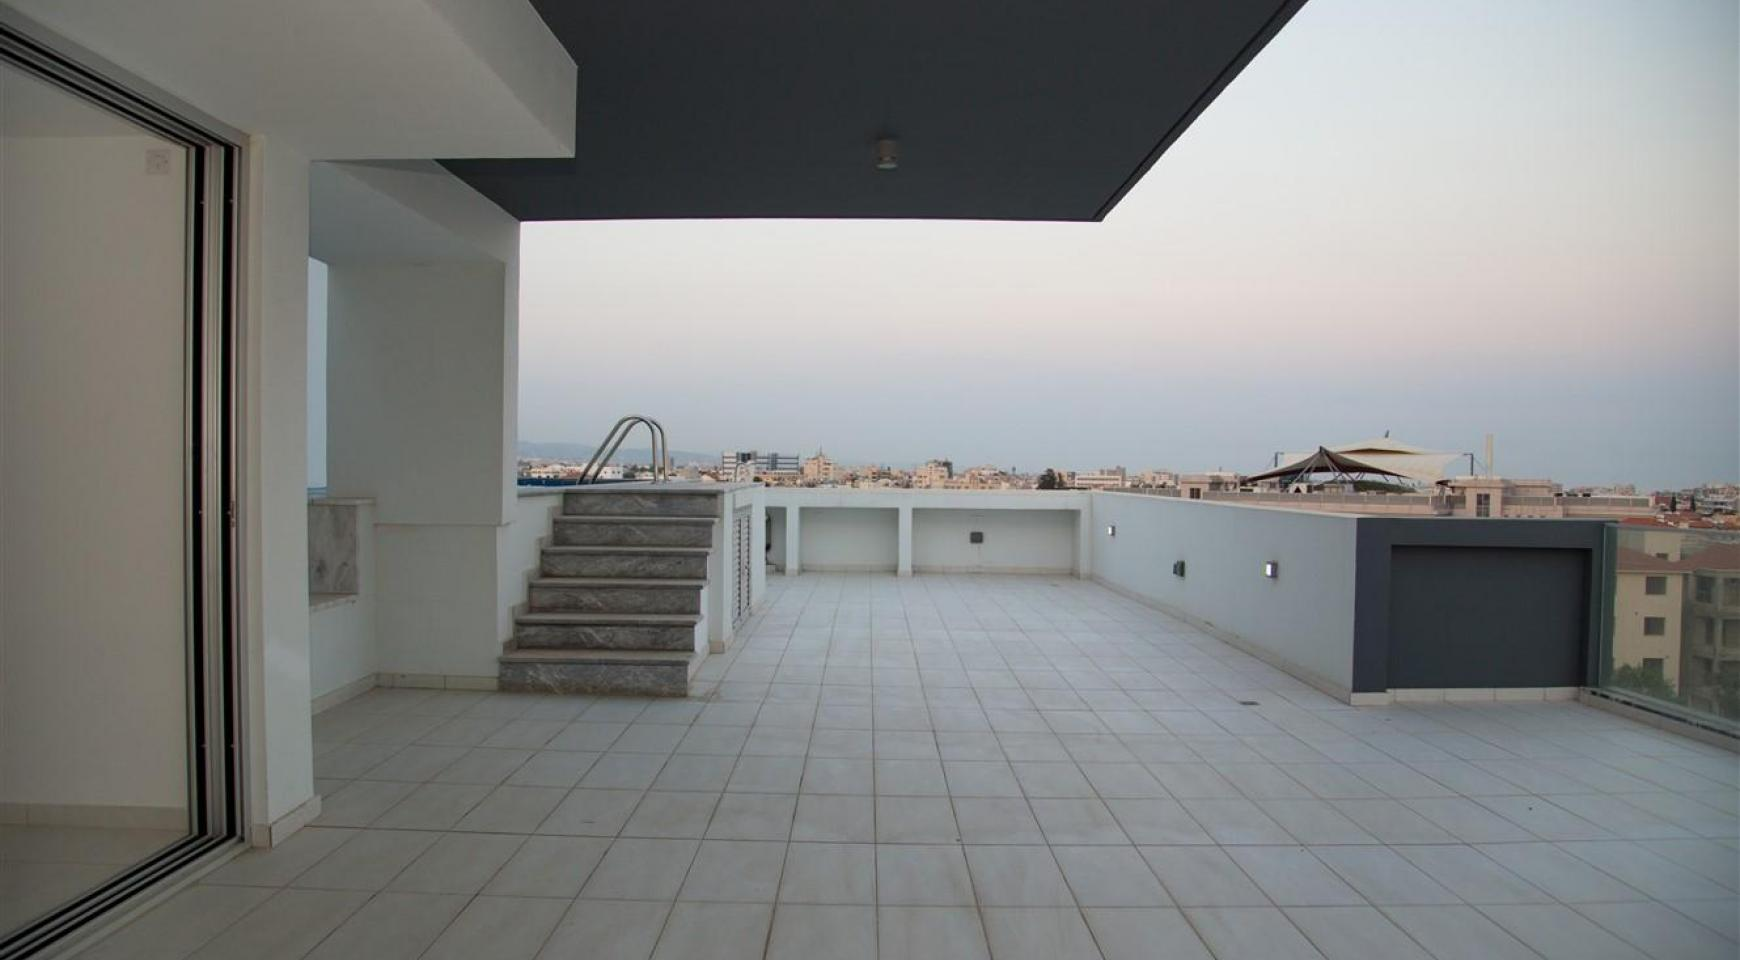 Elite 3 Bedroom Penthouse with private Swimming Pool on the Roof - 26